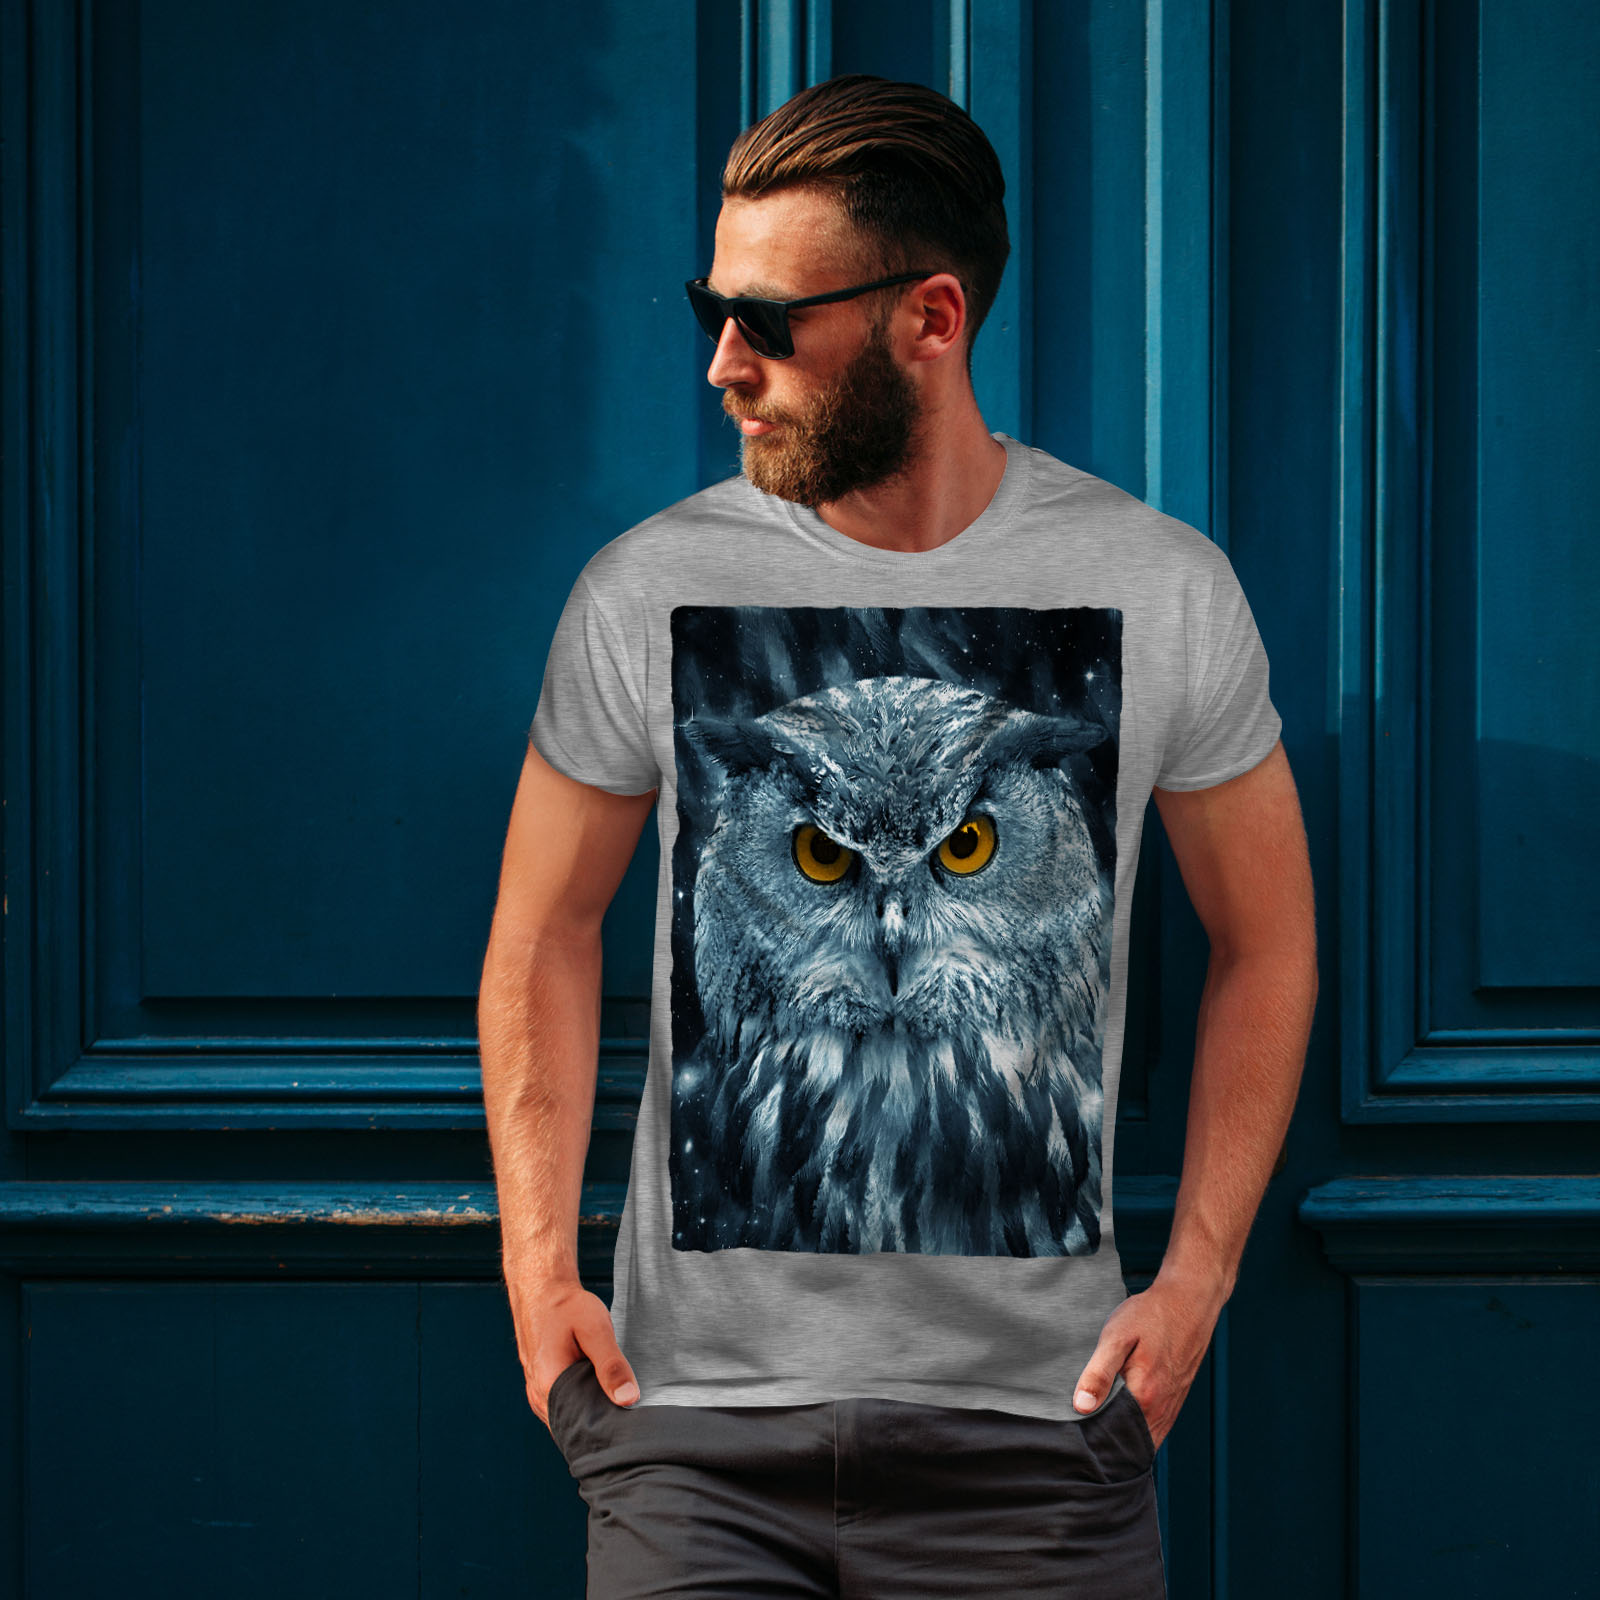 miniature 16 - Wellcoda-Wild-Looking-Owl-Mens-T-shirt-Mother-Graphic-Design-Printed-Tee